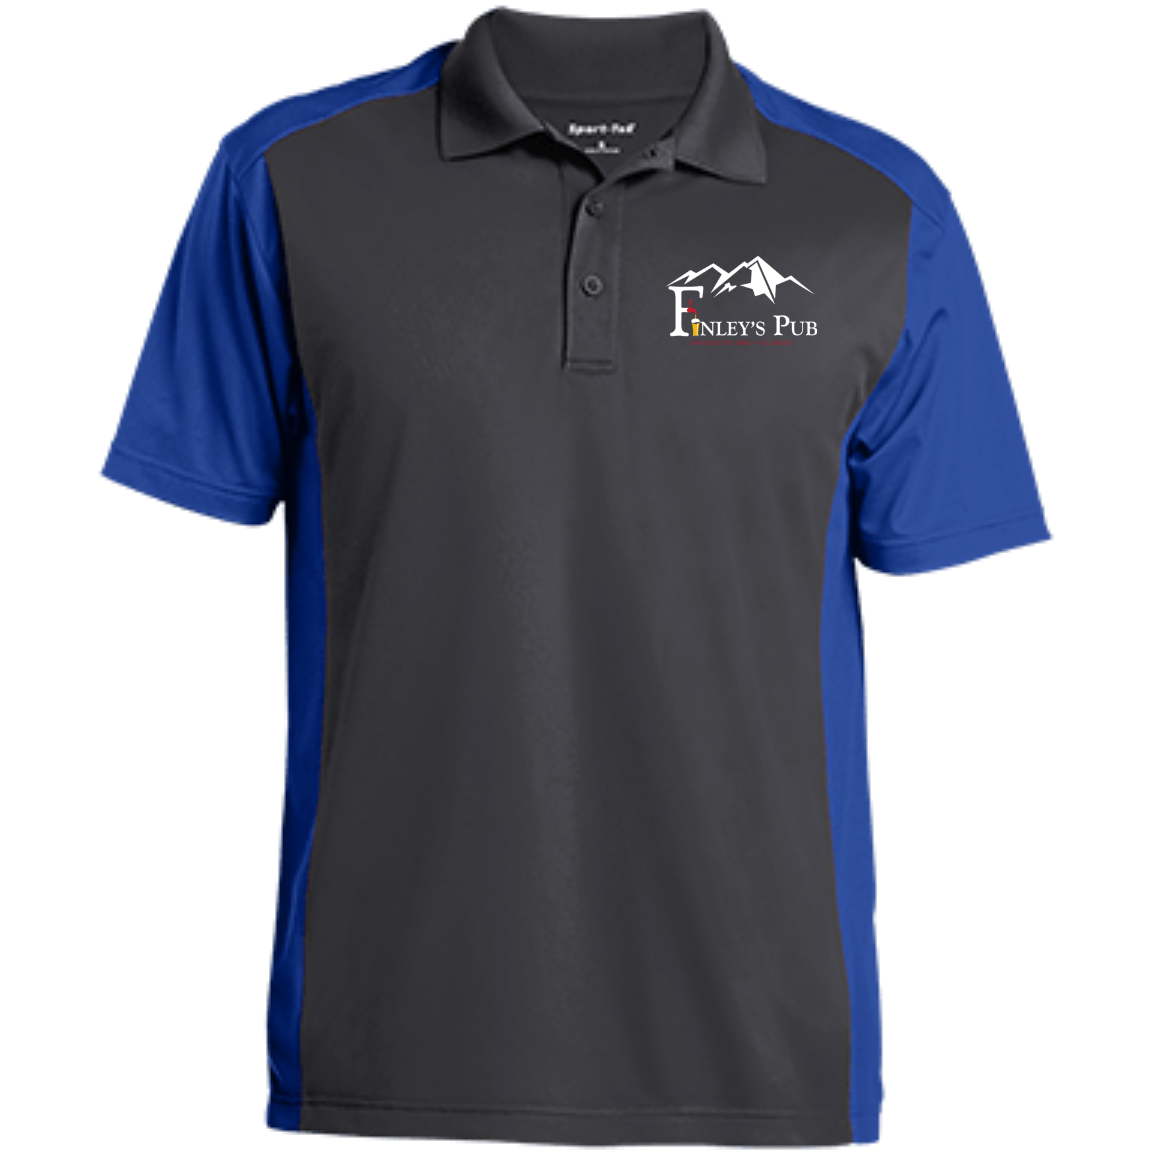 Finley's Pub Men's Color block Sport-Wick Polo